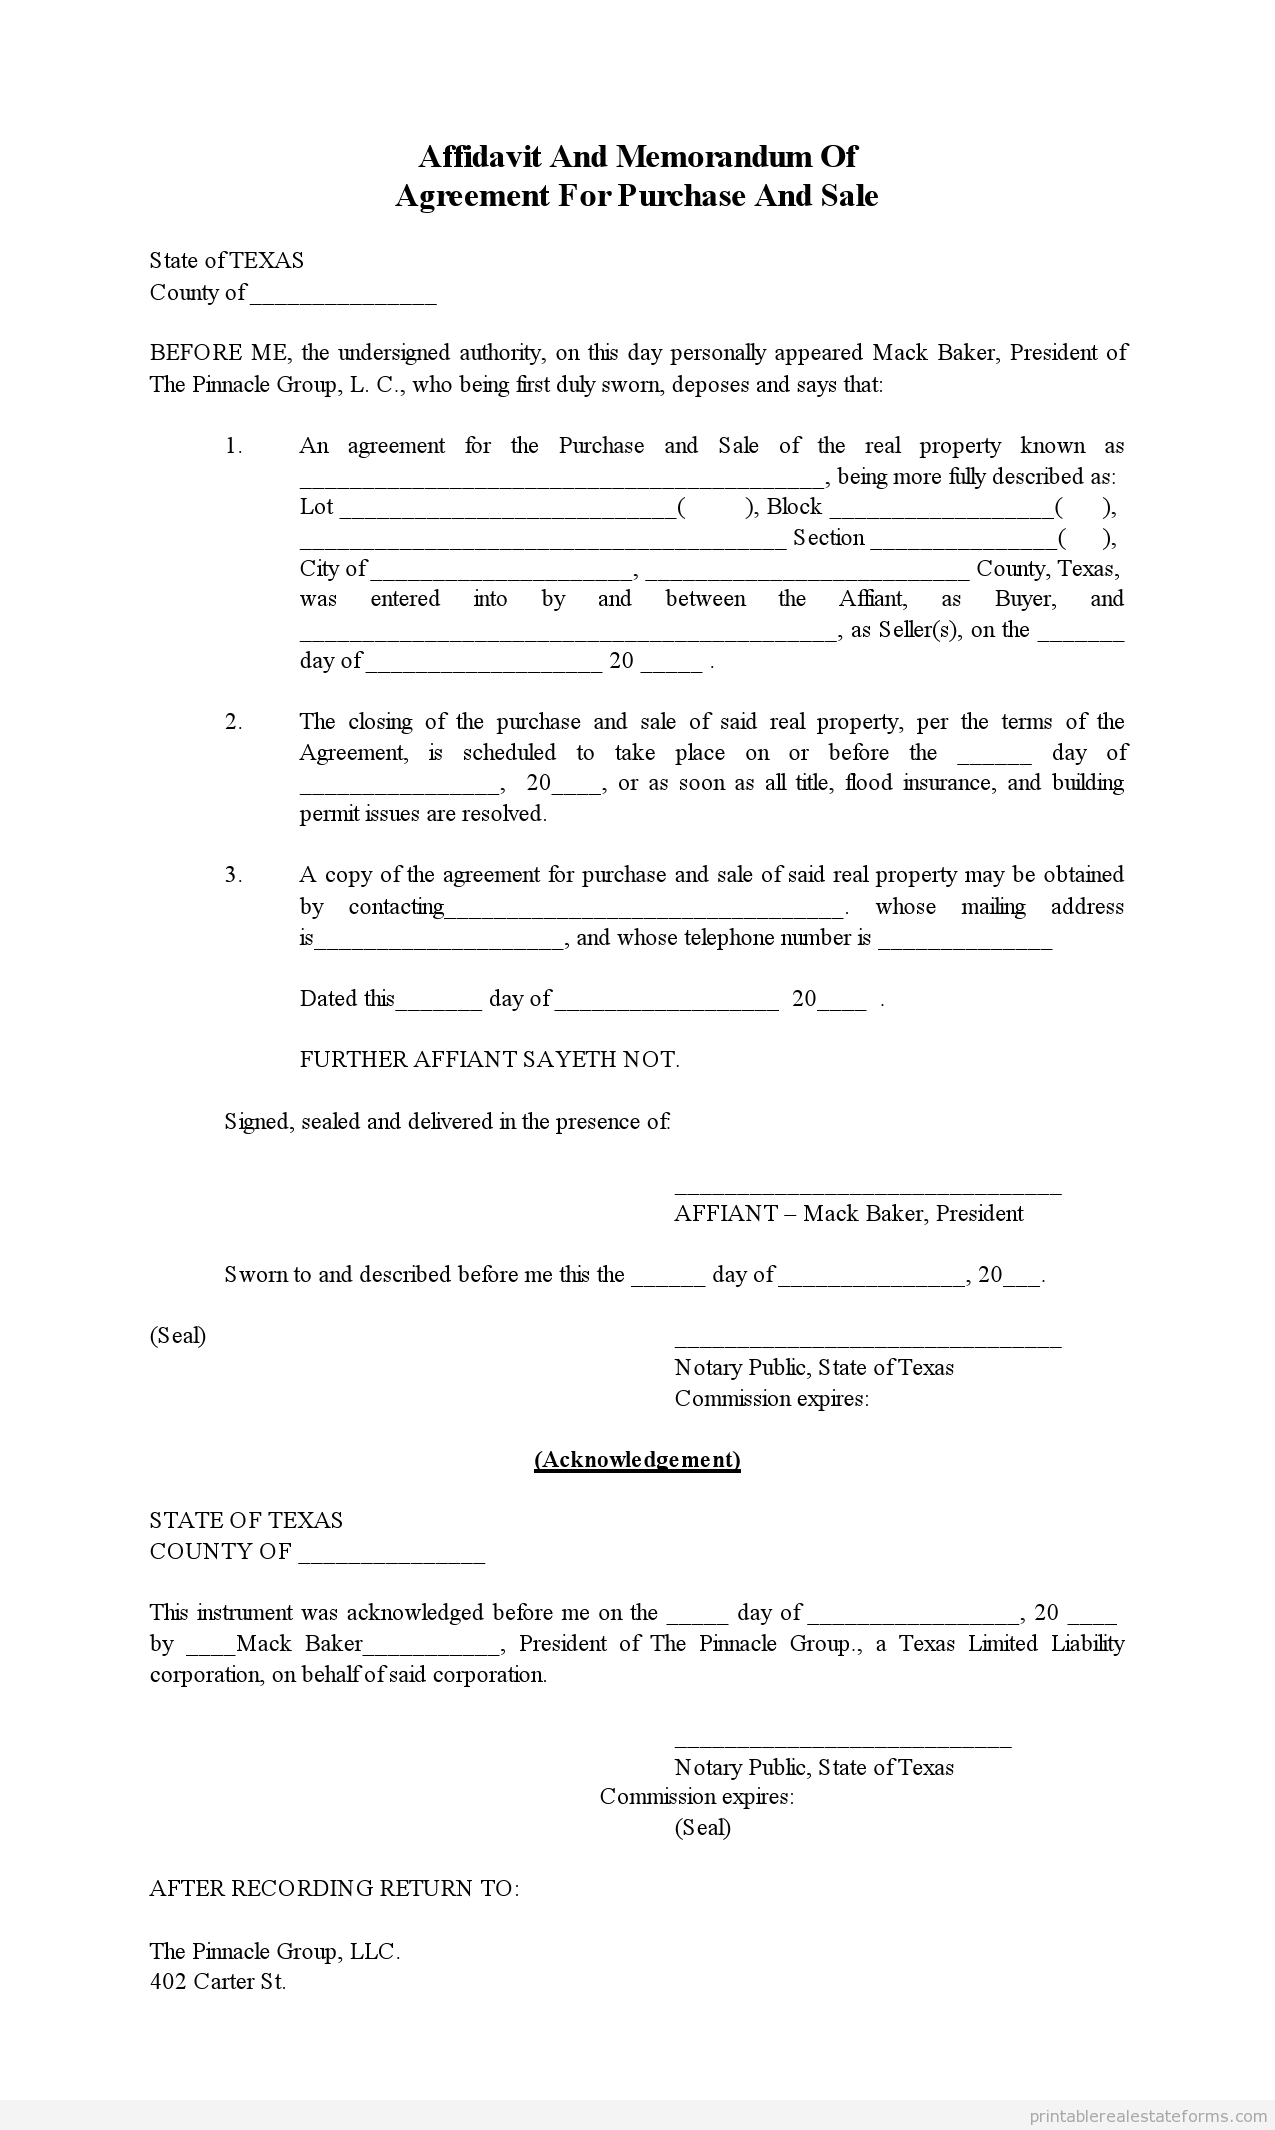 Sample Printable affidavit of memorandum for purchase and